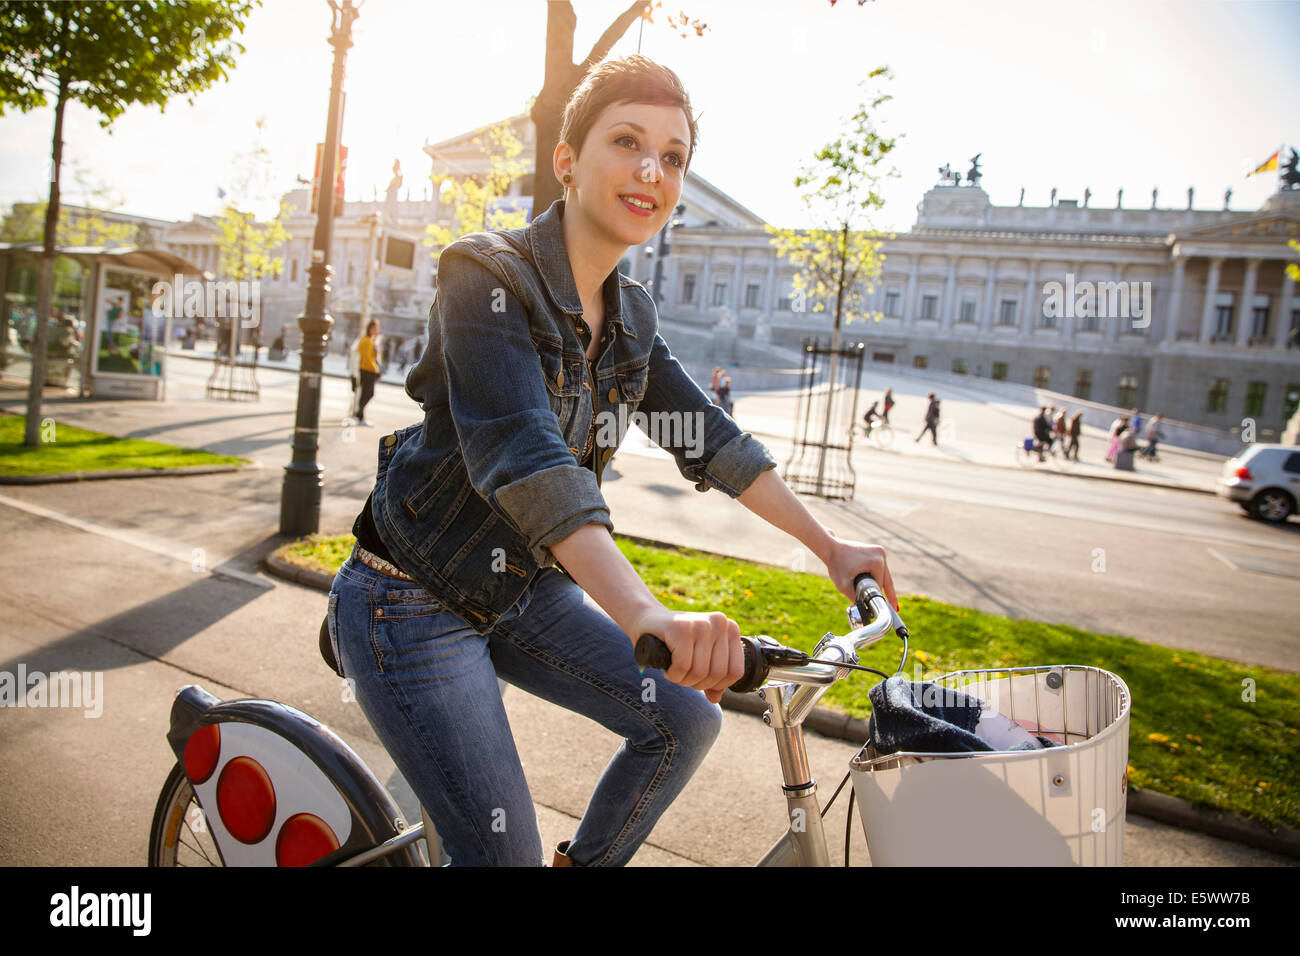 Young adult woman cycling through city, Vienna, Austria - Stock Image